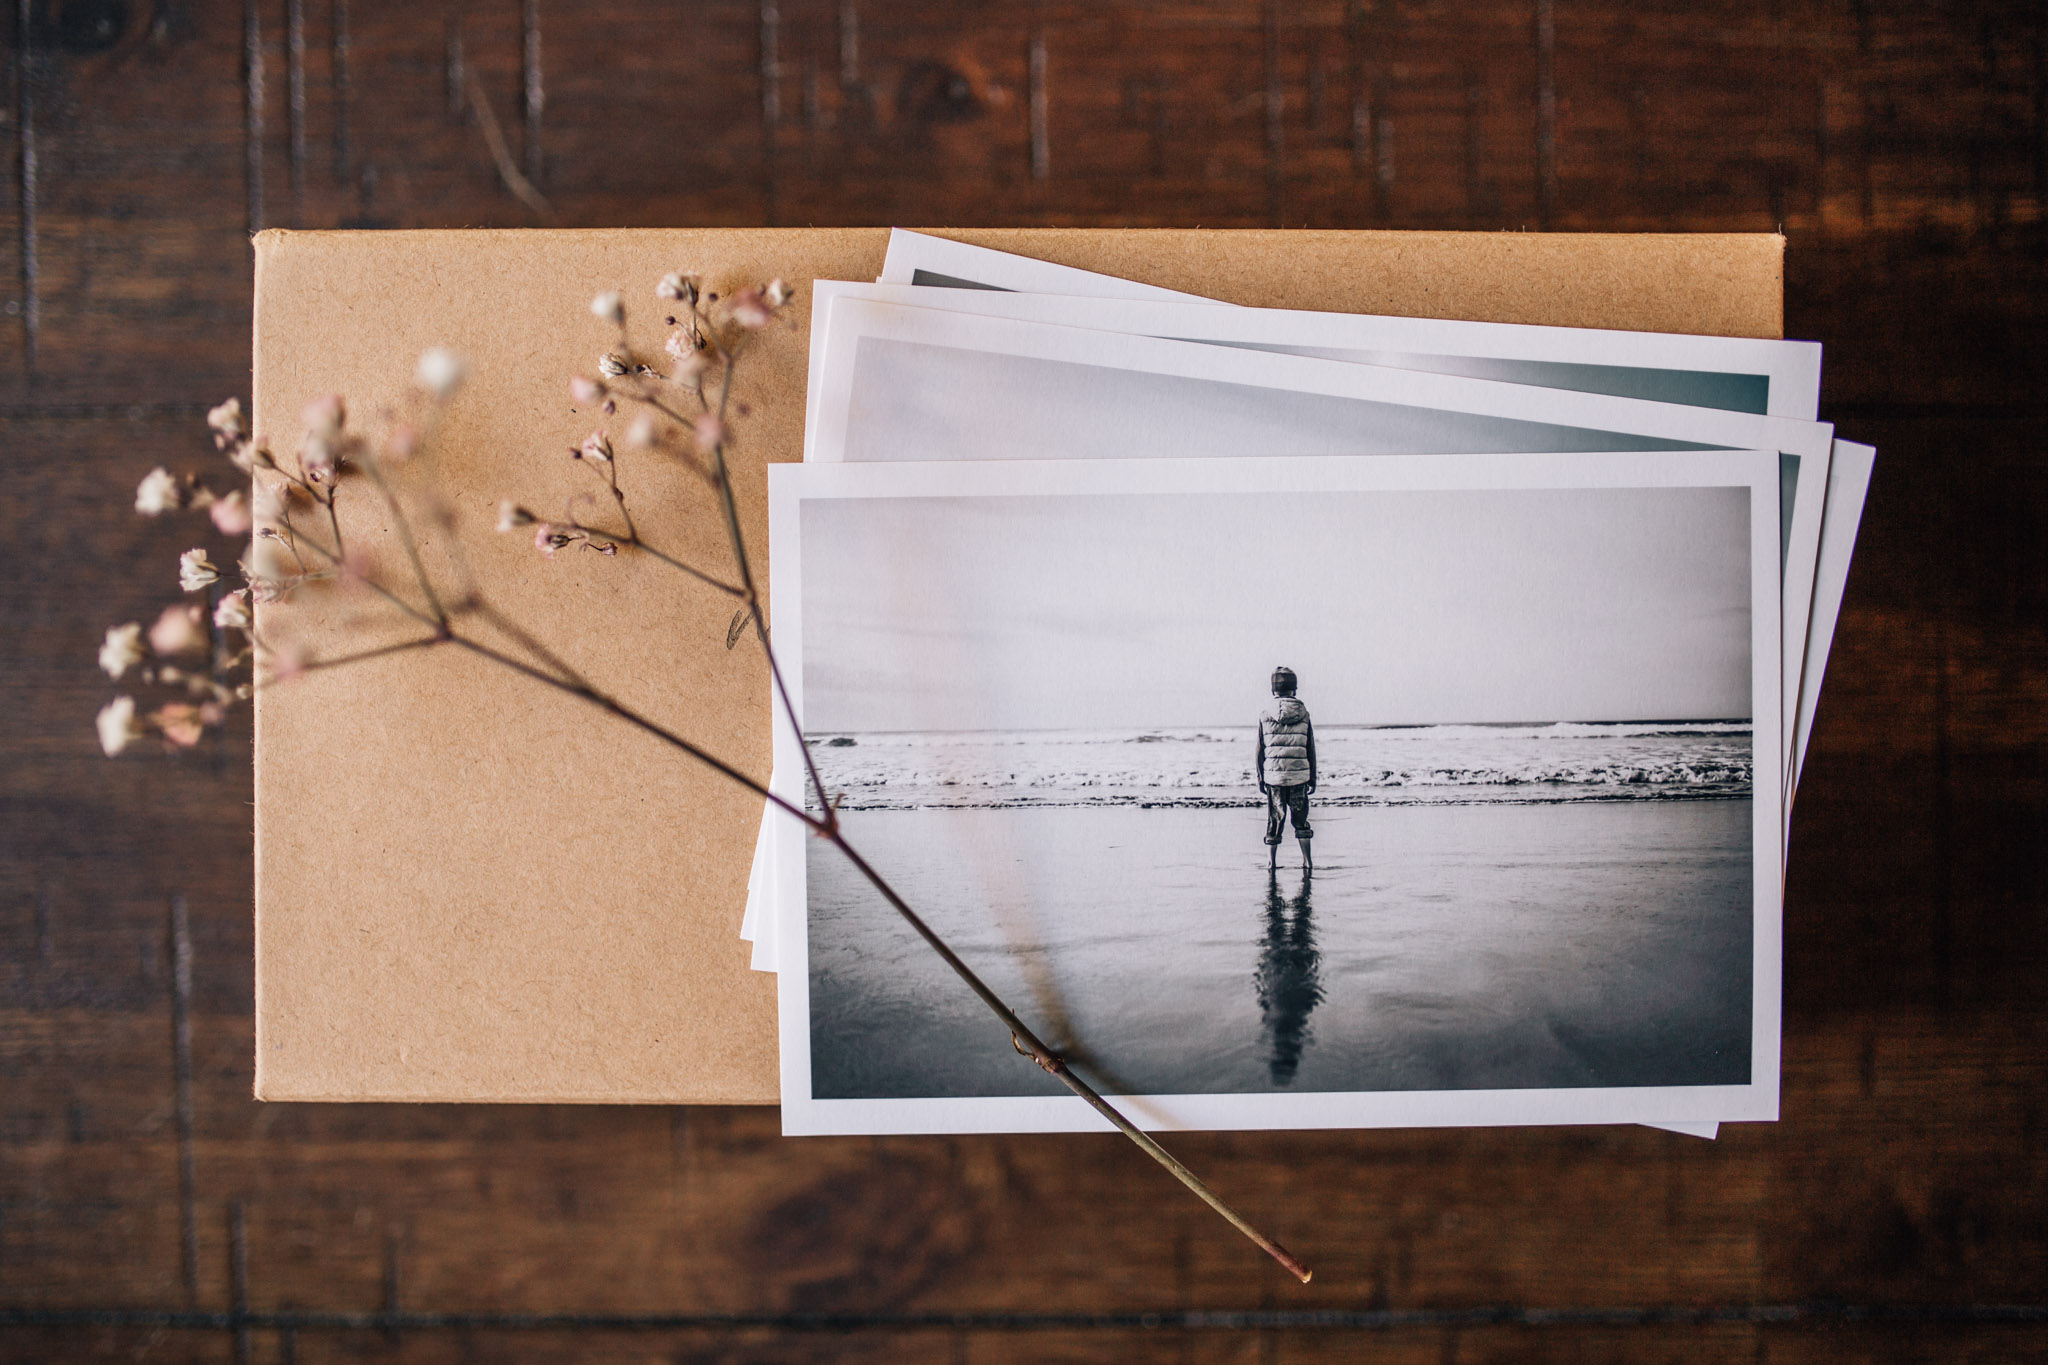 Photographs - real, hold-in-your-hand photographs. What's not to love?